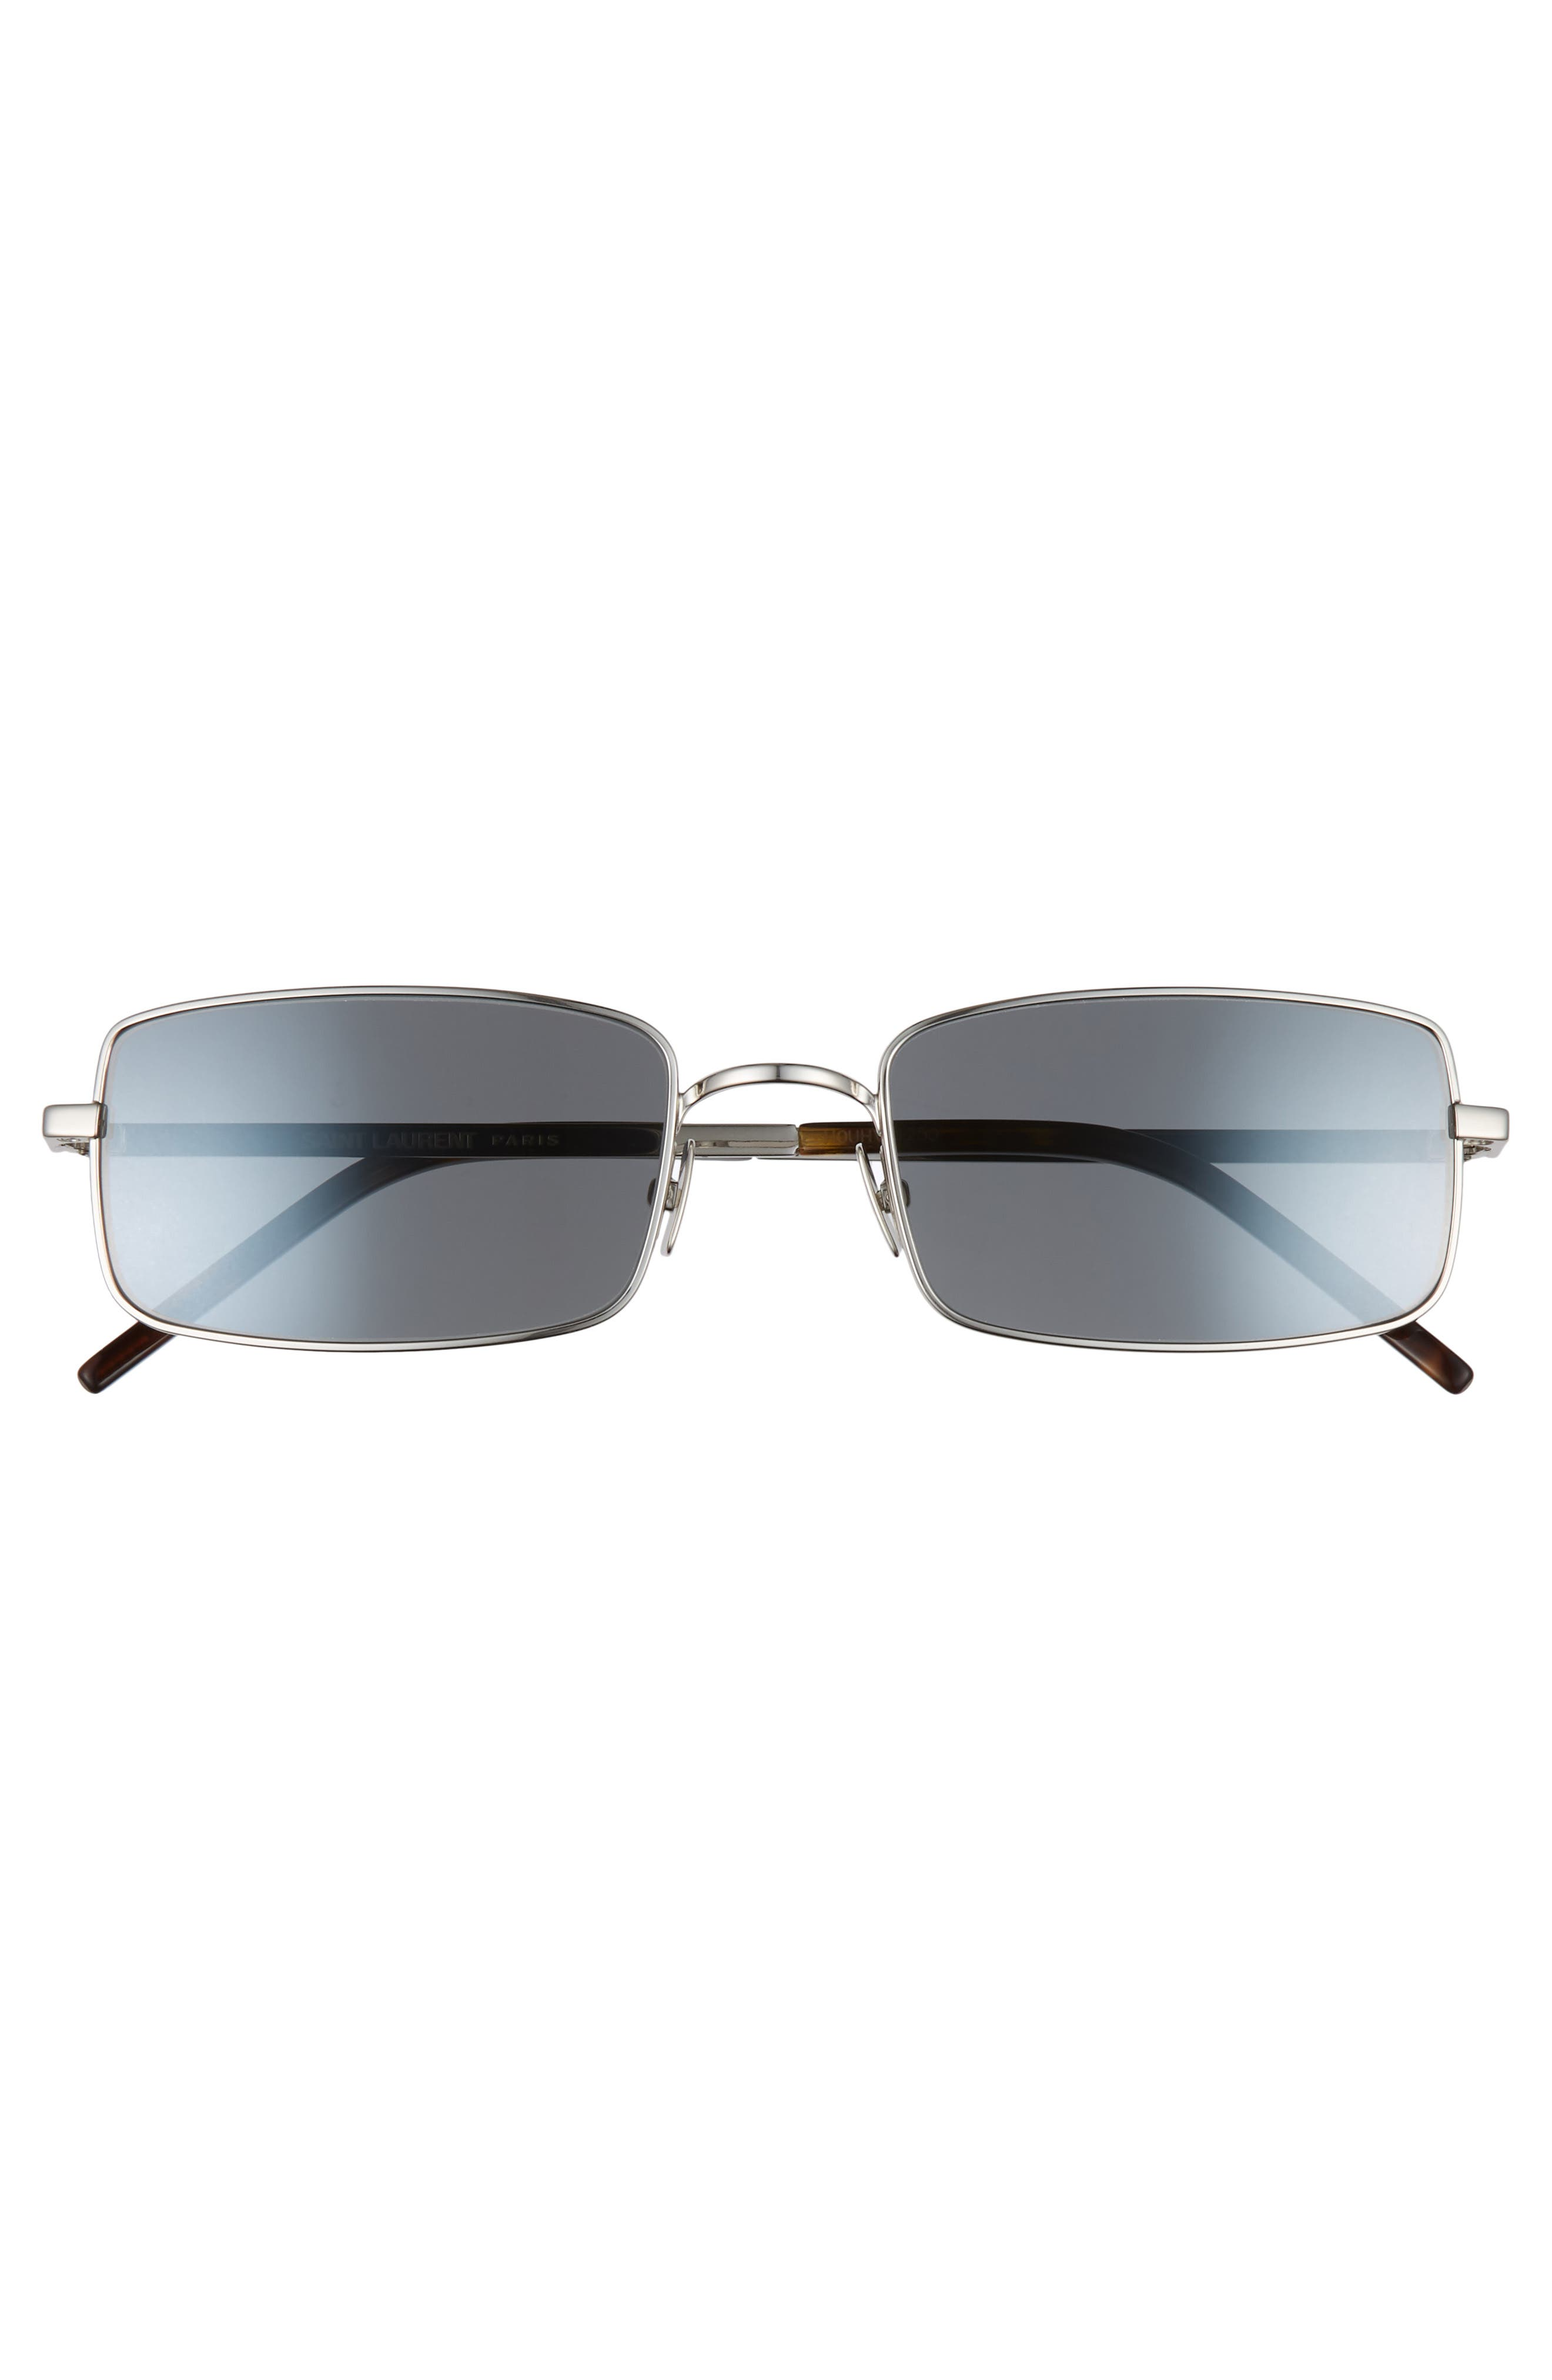 56mm Rectangle Sunglasses,                             Alternate thumbnail 3, color,                             SILVER/ GREY